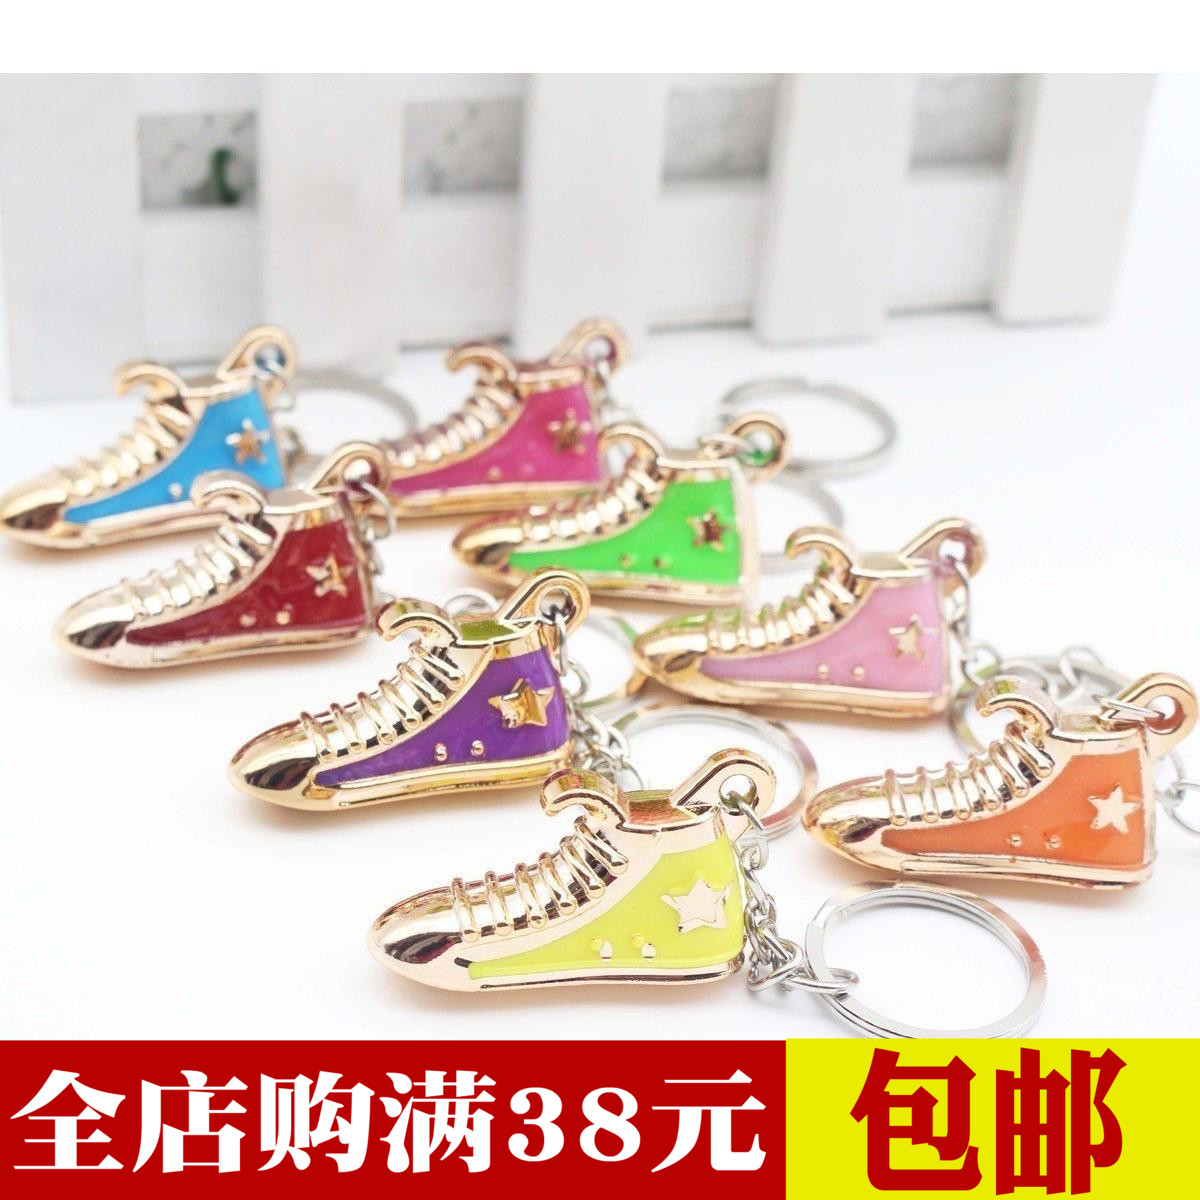 Personalized practical festival activities promotion small gifts exquisite simulation small shoes high top shoes key chain pendant accessories